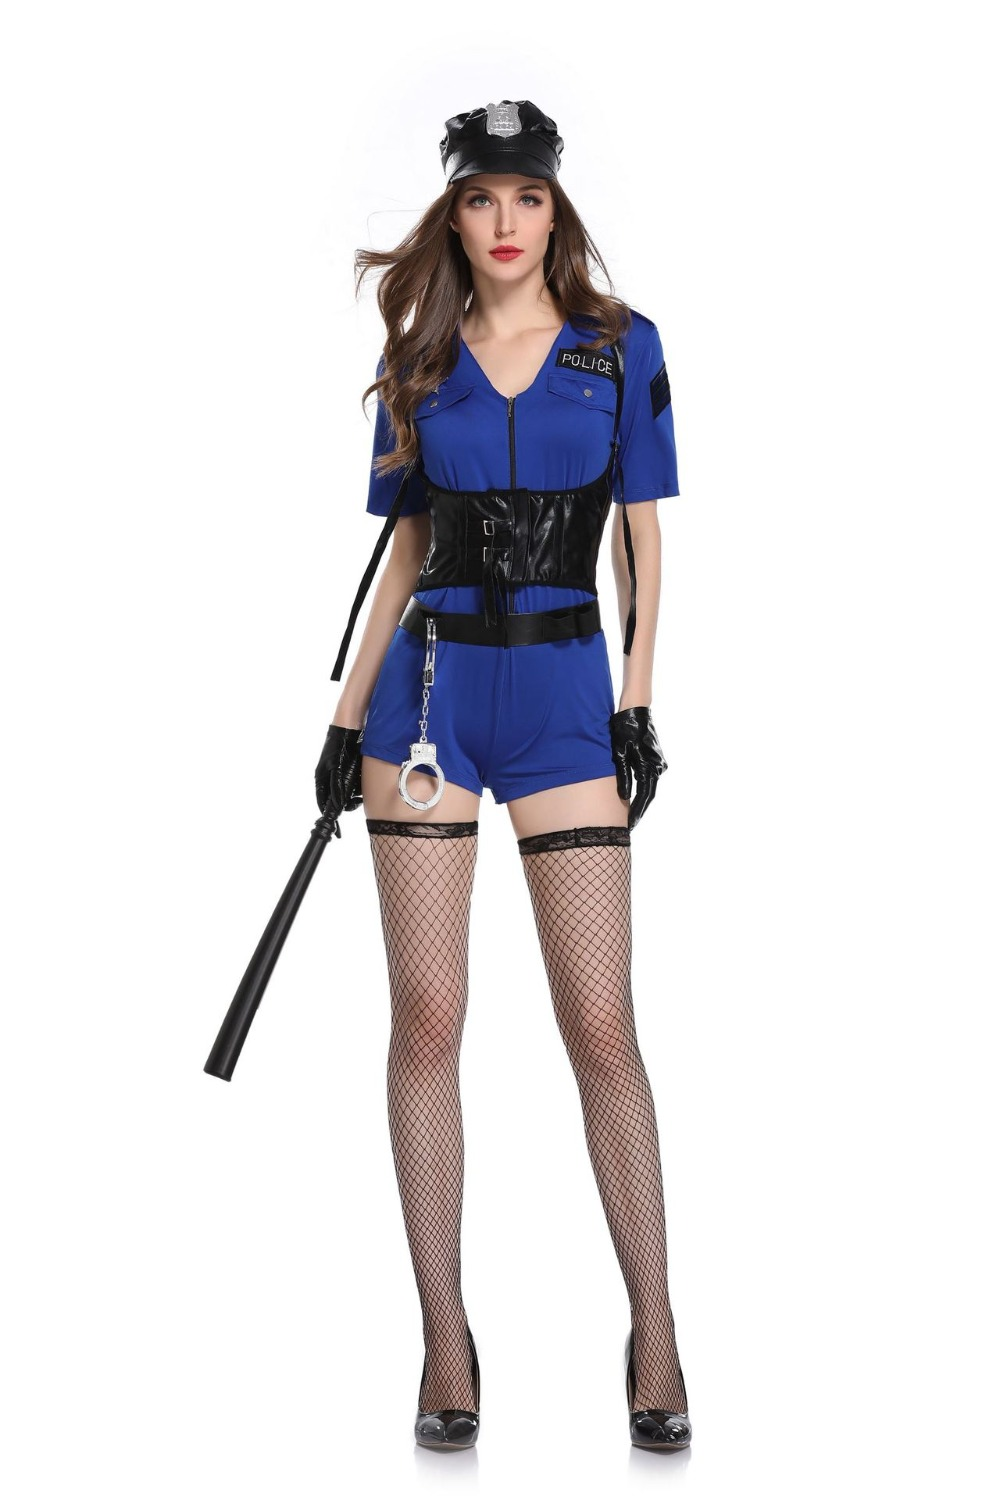 High Quality <font><b>Halloween</b></font> <font><b>Sexy</b></font> Cop Outfit Woman Cosplay <font><b>Blue</b></font> <font><b>Sexy</b></font> Police <font><b>Costumes</b></font> <font><b>for</b></font> <font><b>Women</b></font> image